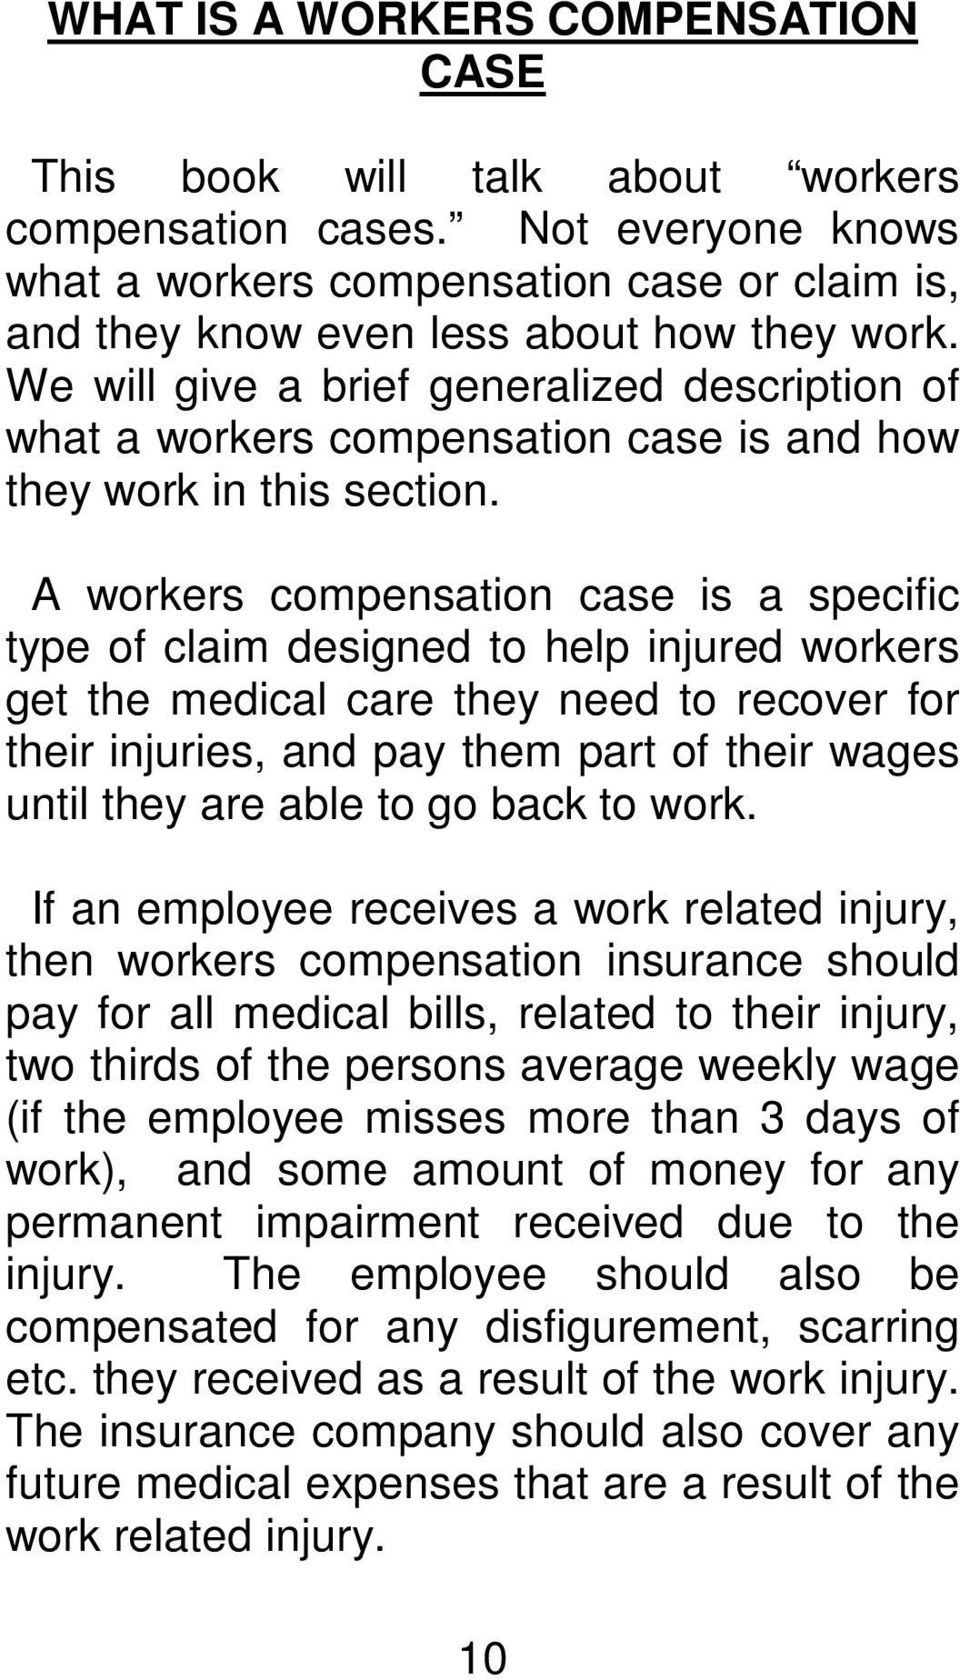 A workers compensation case is a specific type of claim designed to help injured workers get the medical care they need to recover for their injuries, and pay them part of their wages until they are